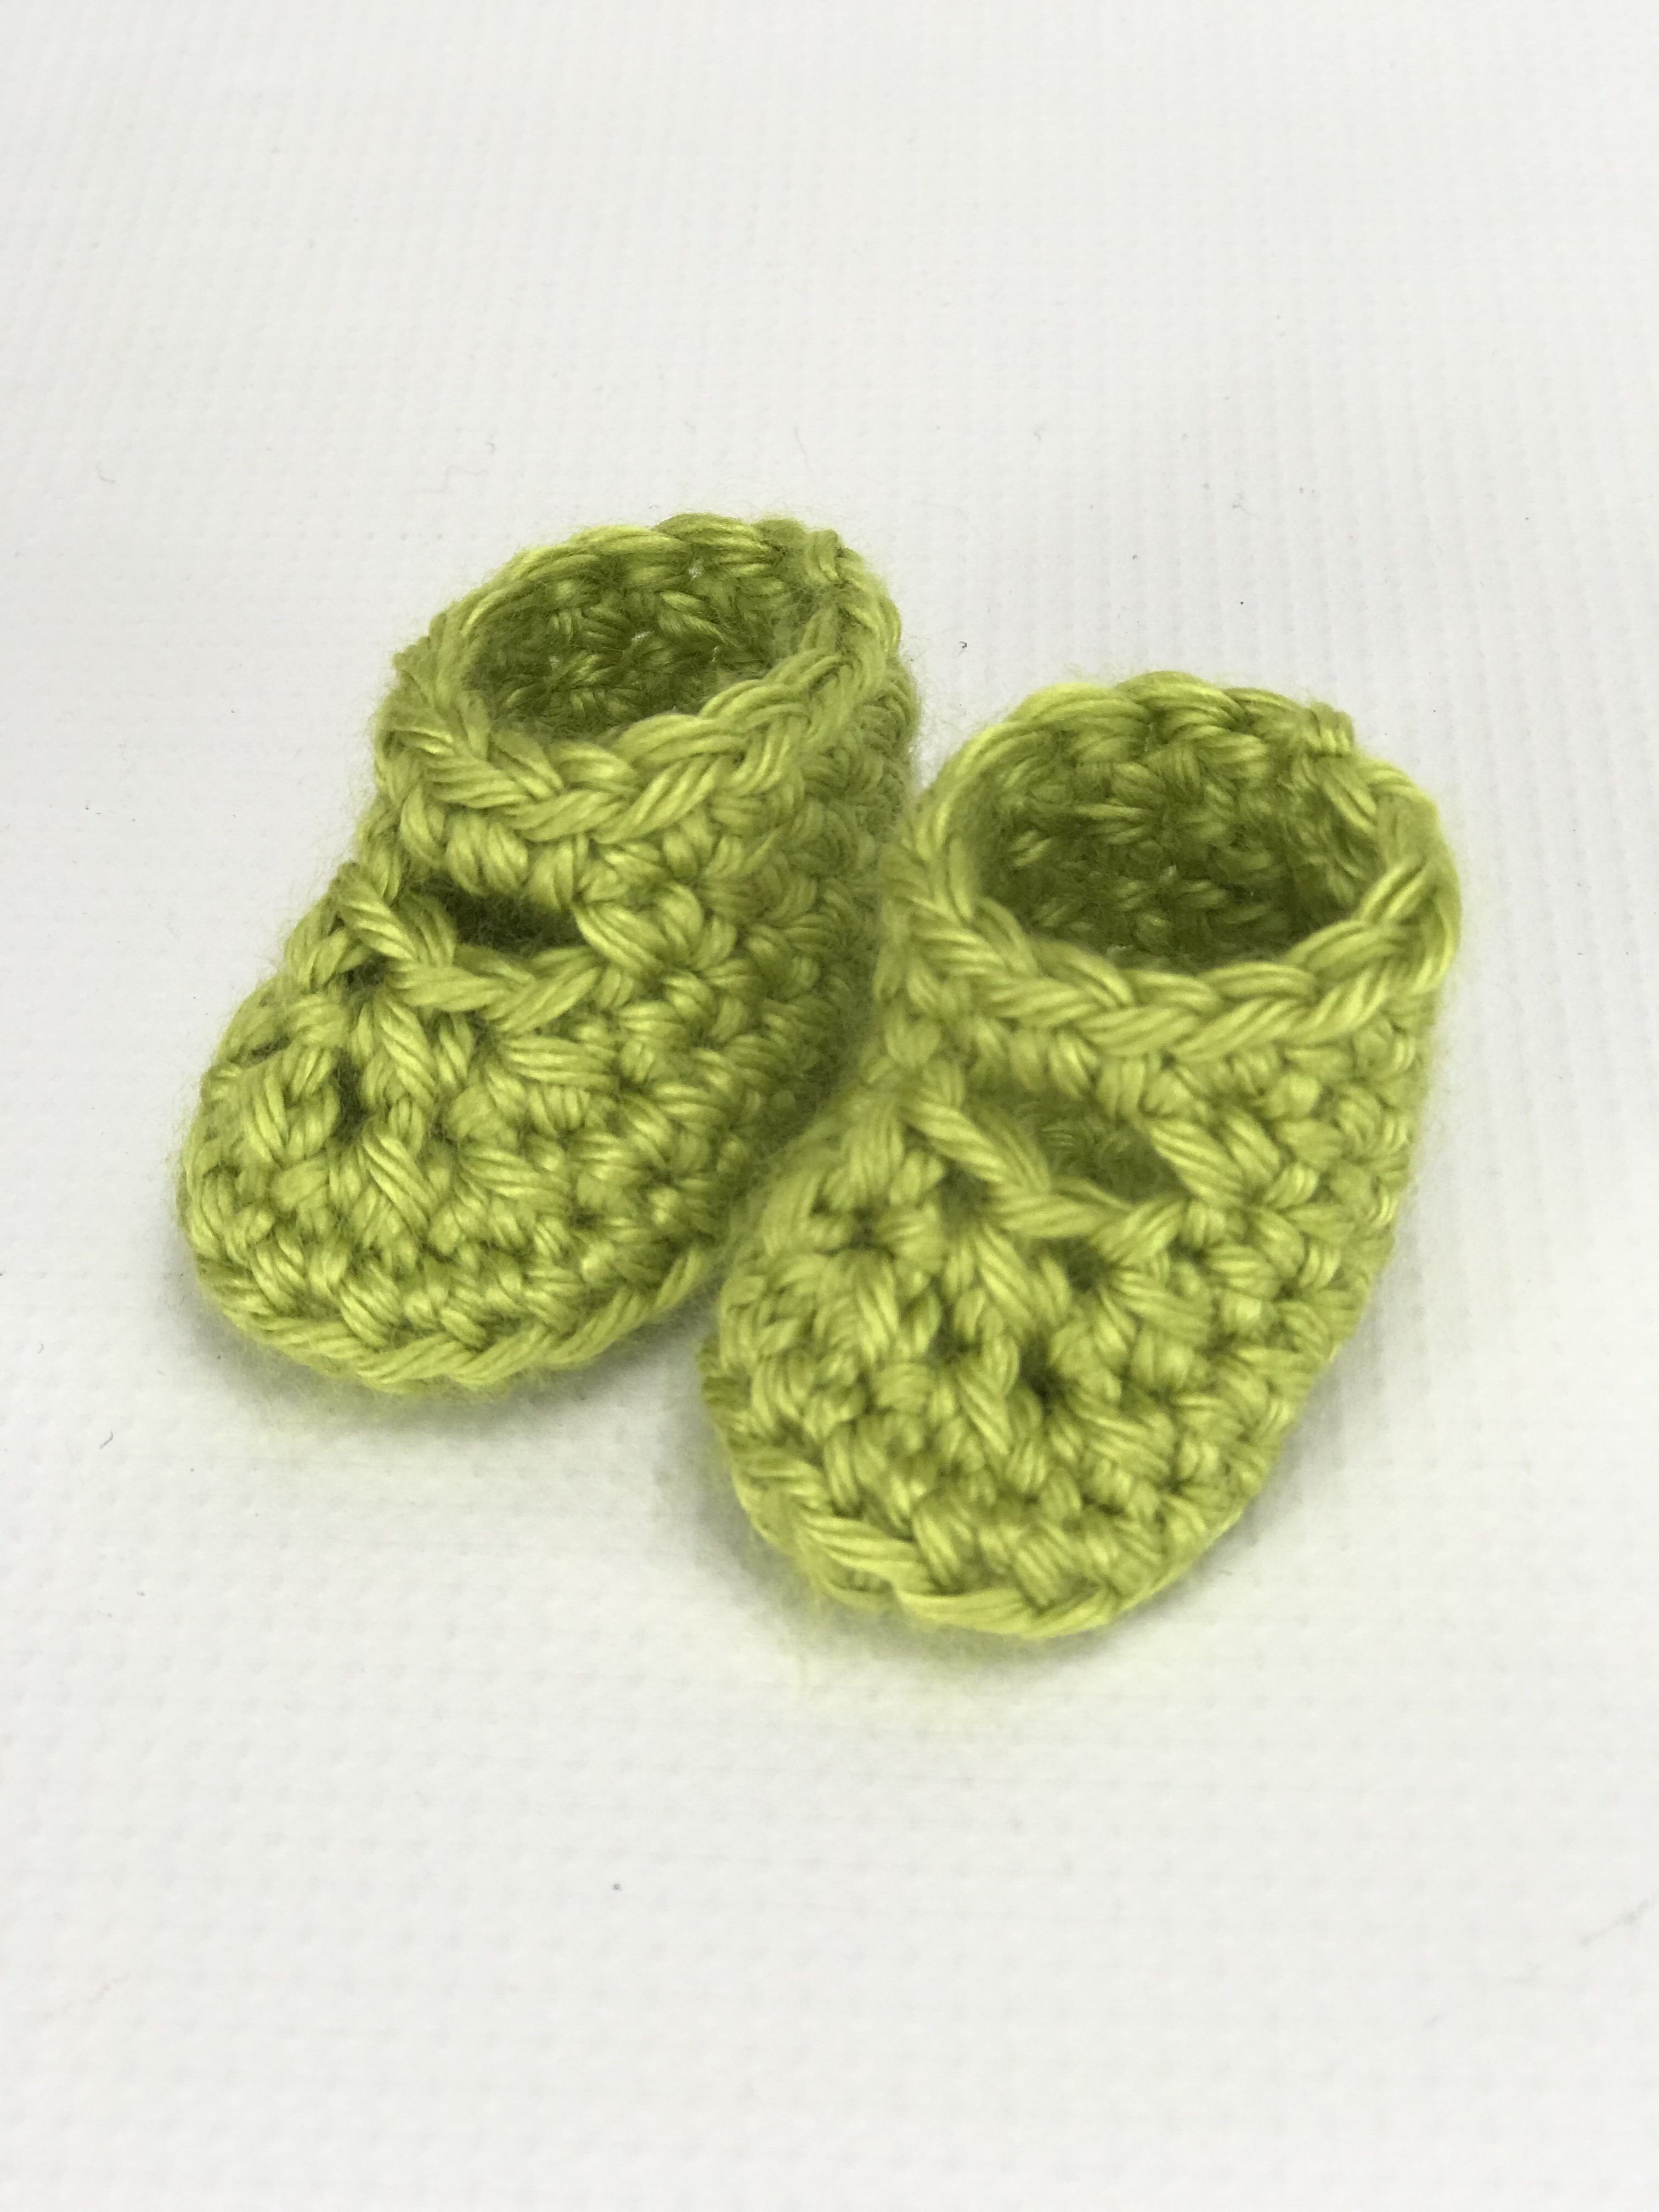 How to Crochet a Basic Doll | Crochet shoes pattern, Crochet doll ... | 4032x3024